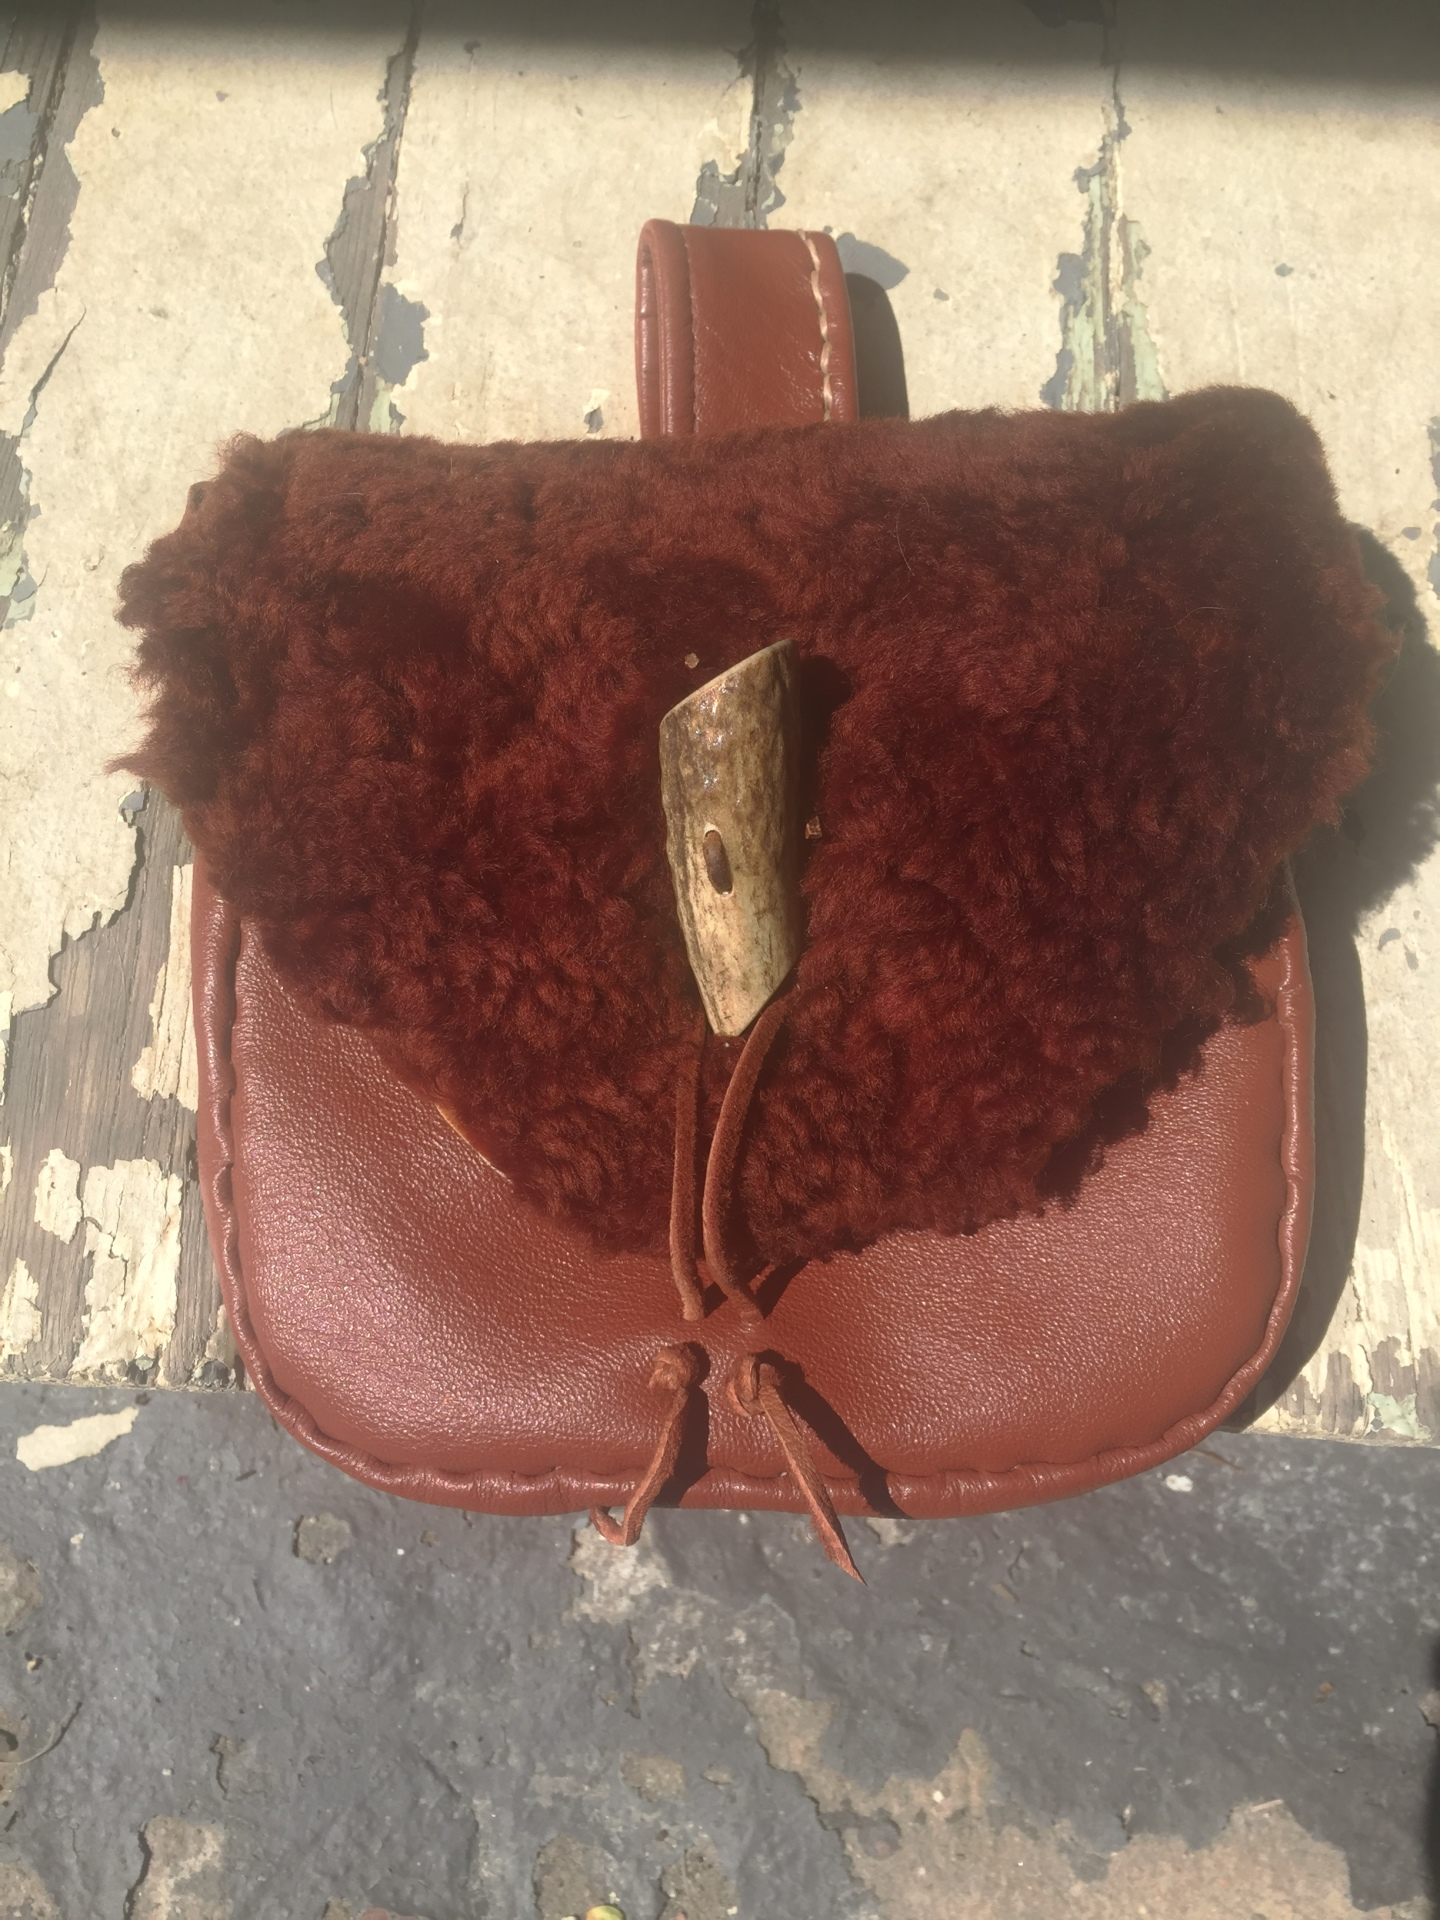 antler button, bison fur, up-cycled bison, up-cycled leather, up-cycled sporran, recycled leather, bison sporran, sporran